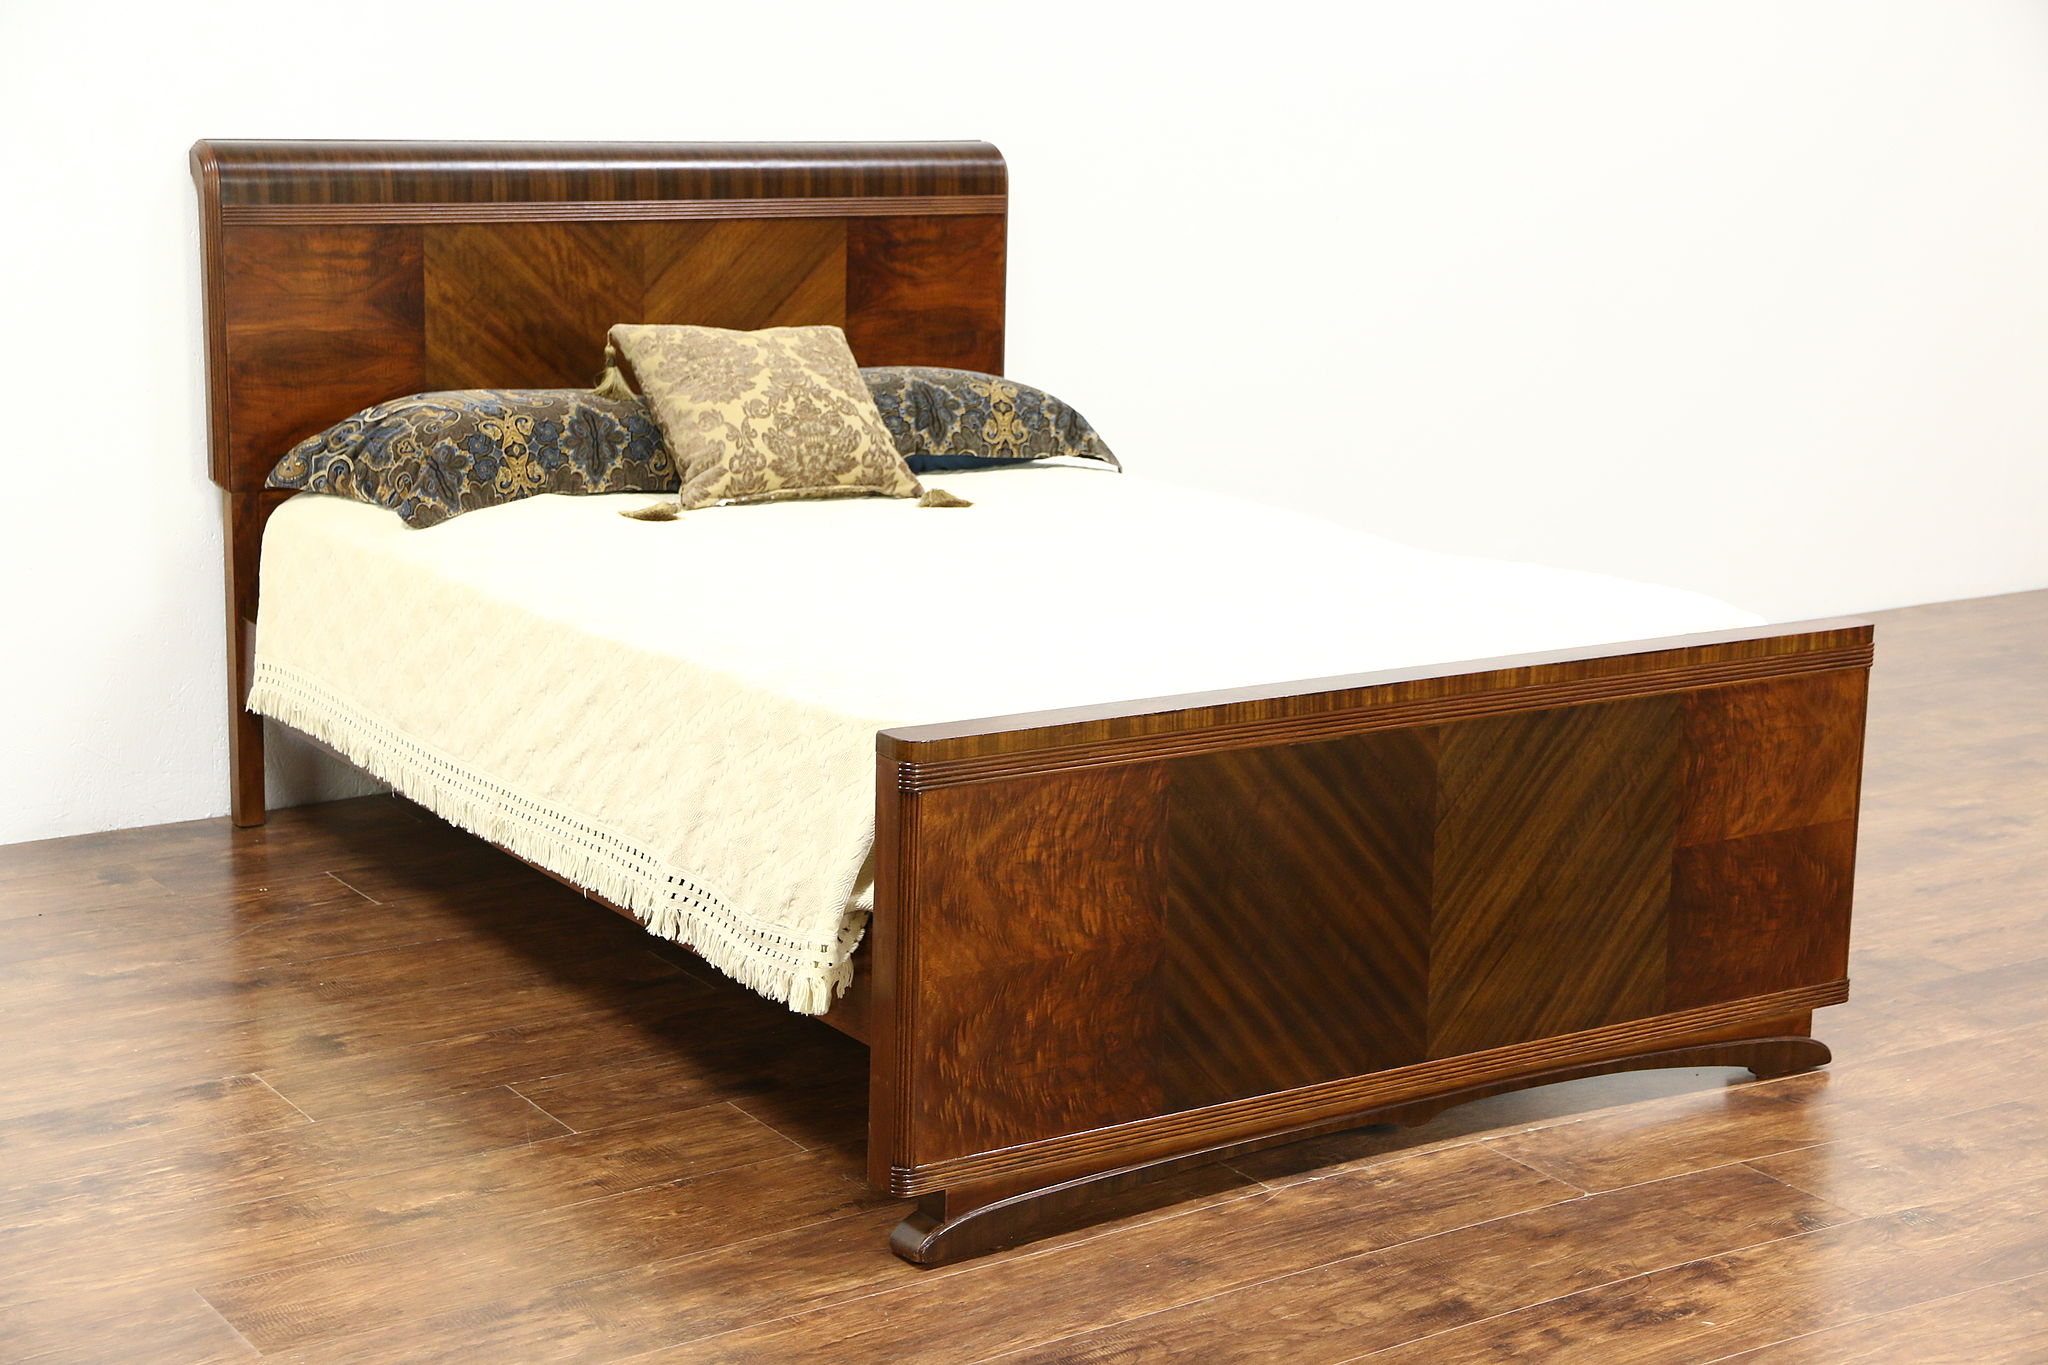 Double Size Bed Art Deco Waterfall Mahogany Burl 1935 Vintage Full Double Size Bed